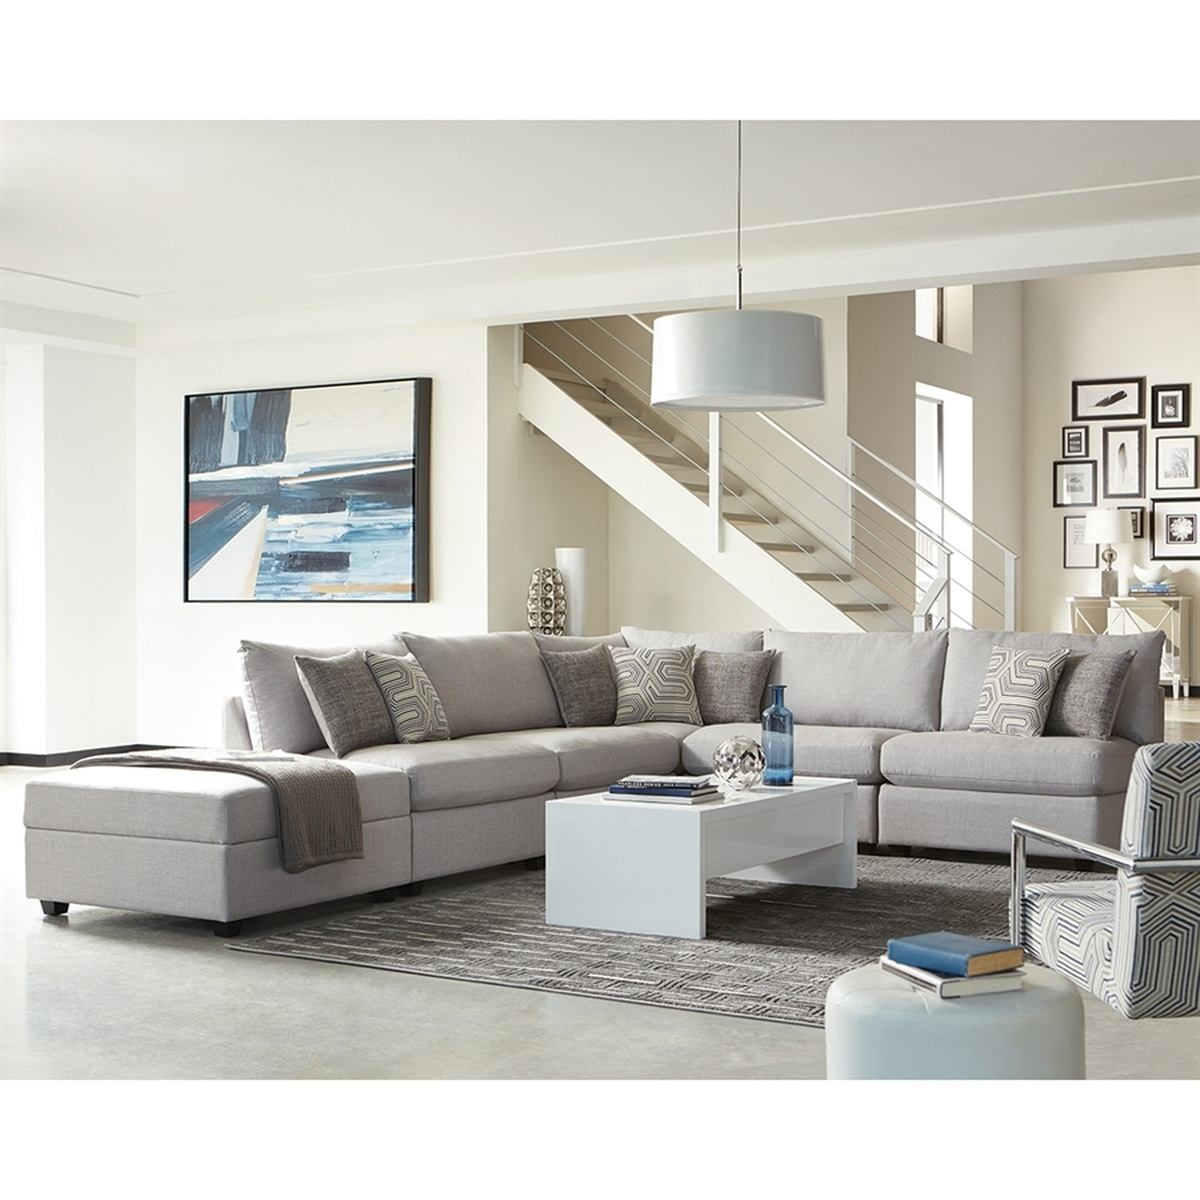 Coaster Scott Living Claude II 6pc Sectional Living Room Set in Grey